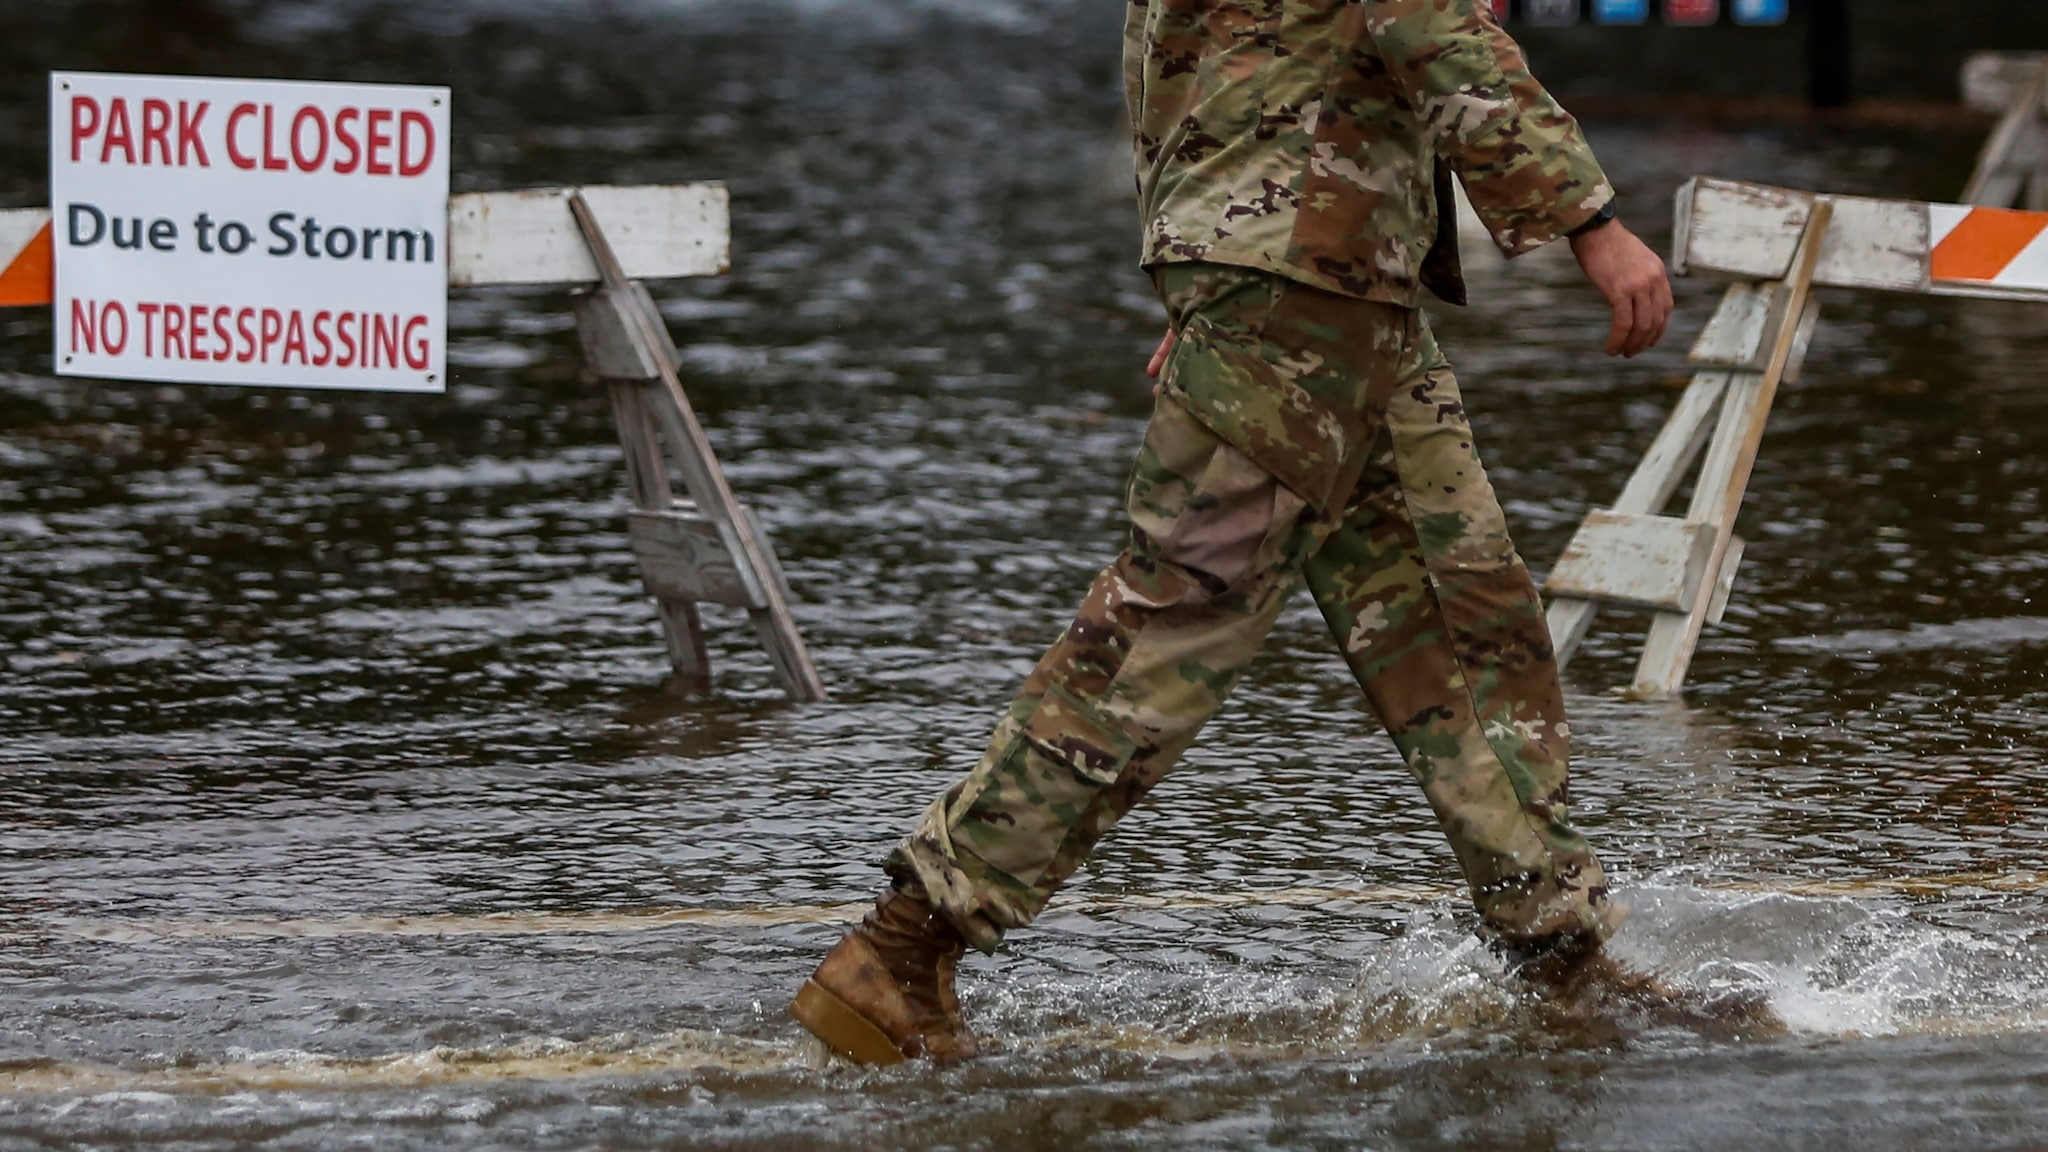 A member of the US Army walks through floodwaters near the Union Point Park Complex as Hurricane Florence comes ashore in New Bern, North Carolina, US. September 13, 2018. REUTERS/Eduardo Munoz